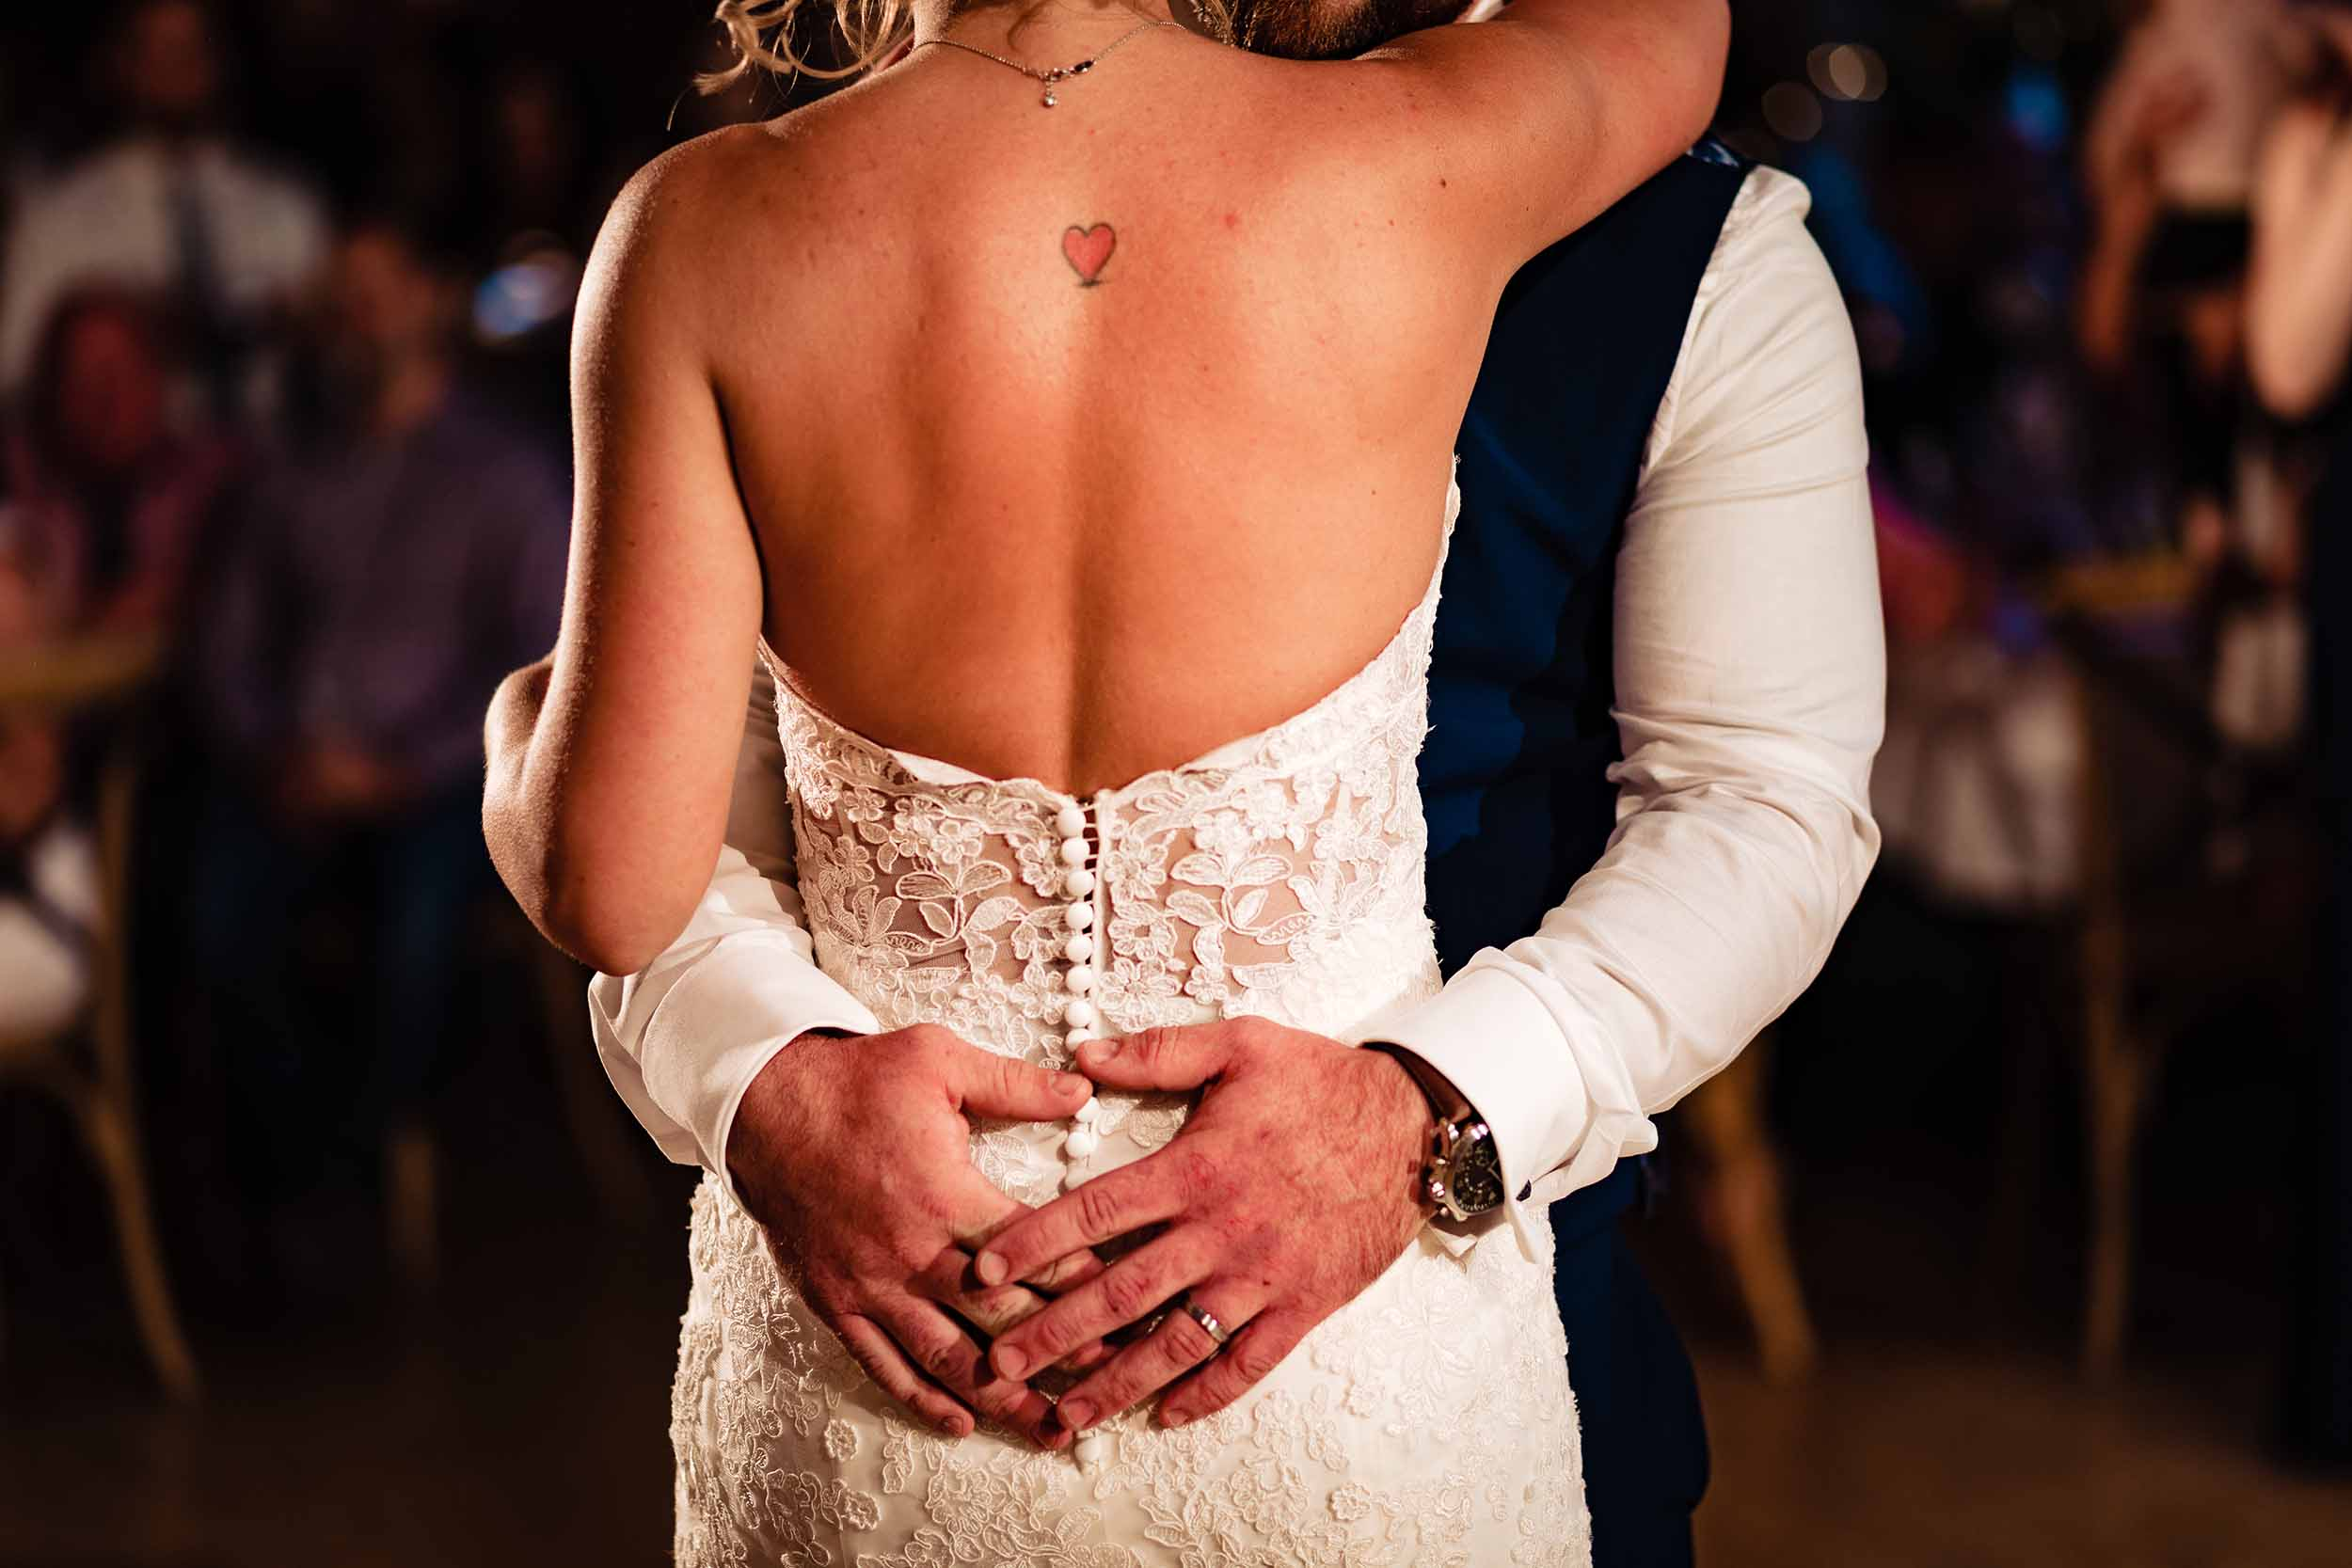 a groom's hands around a bride as they dance at their wedding